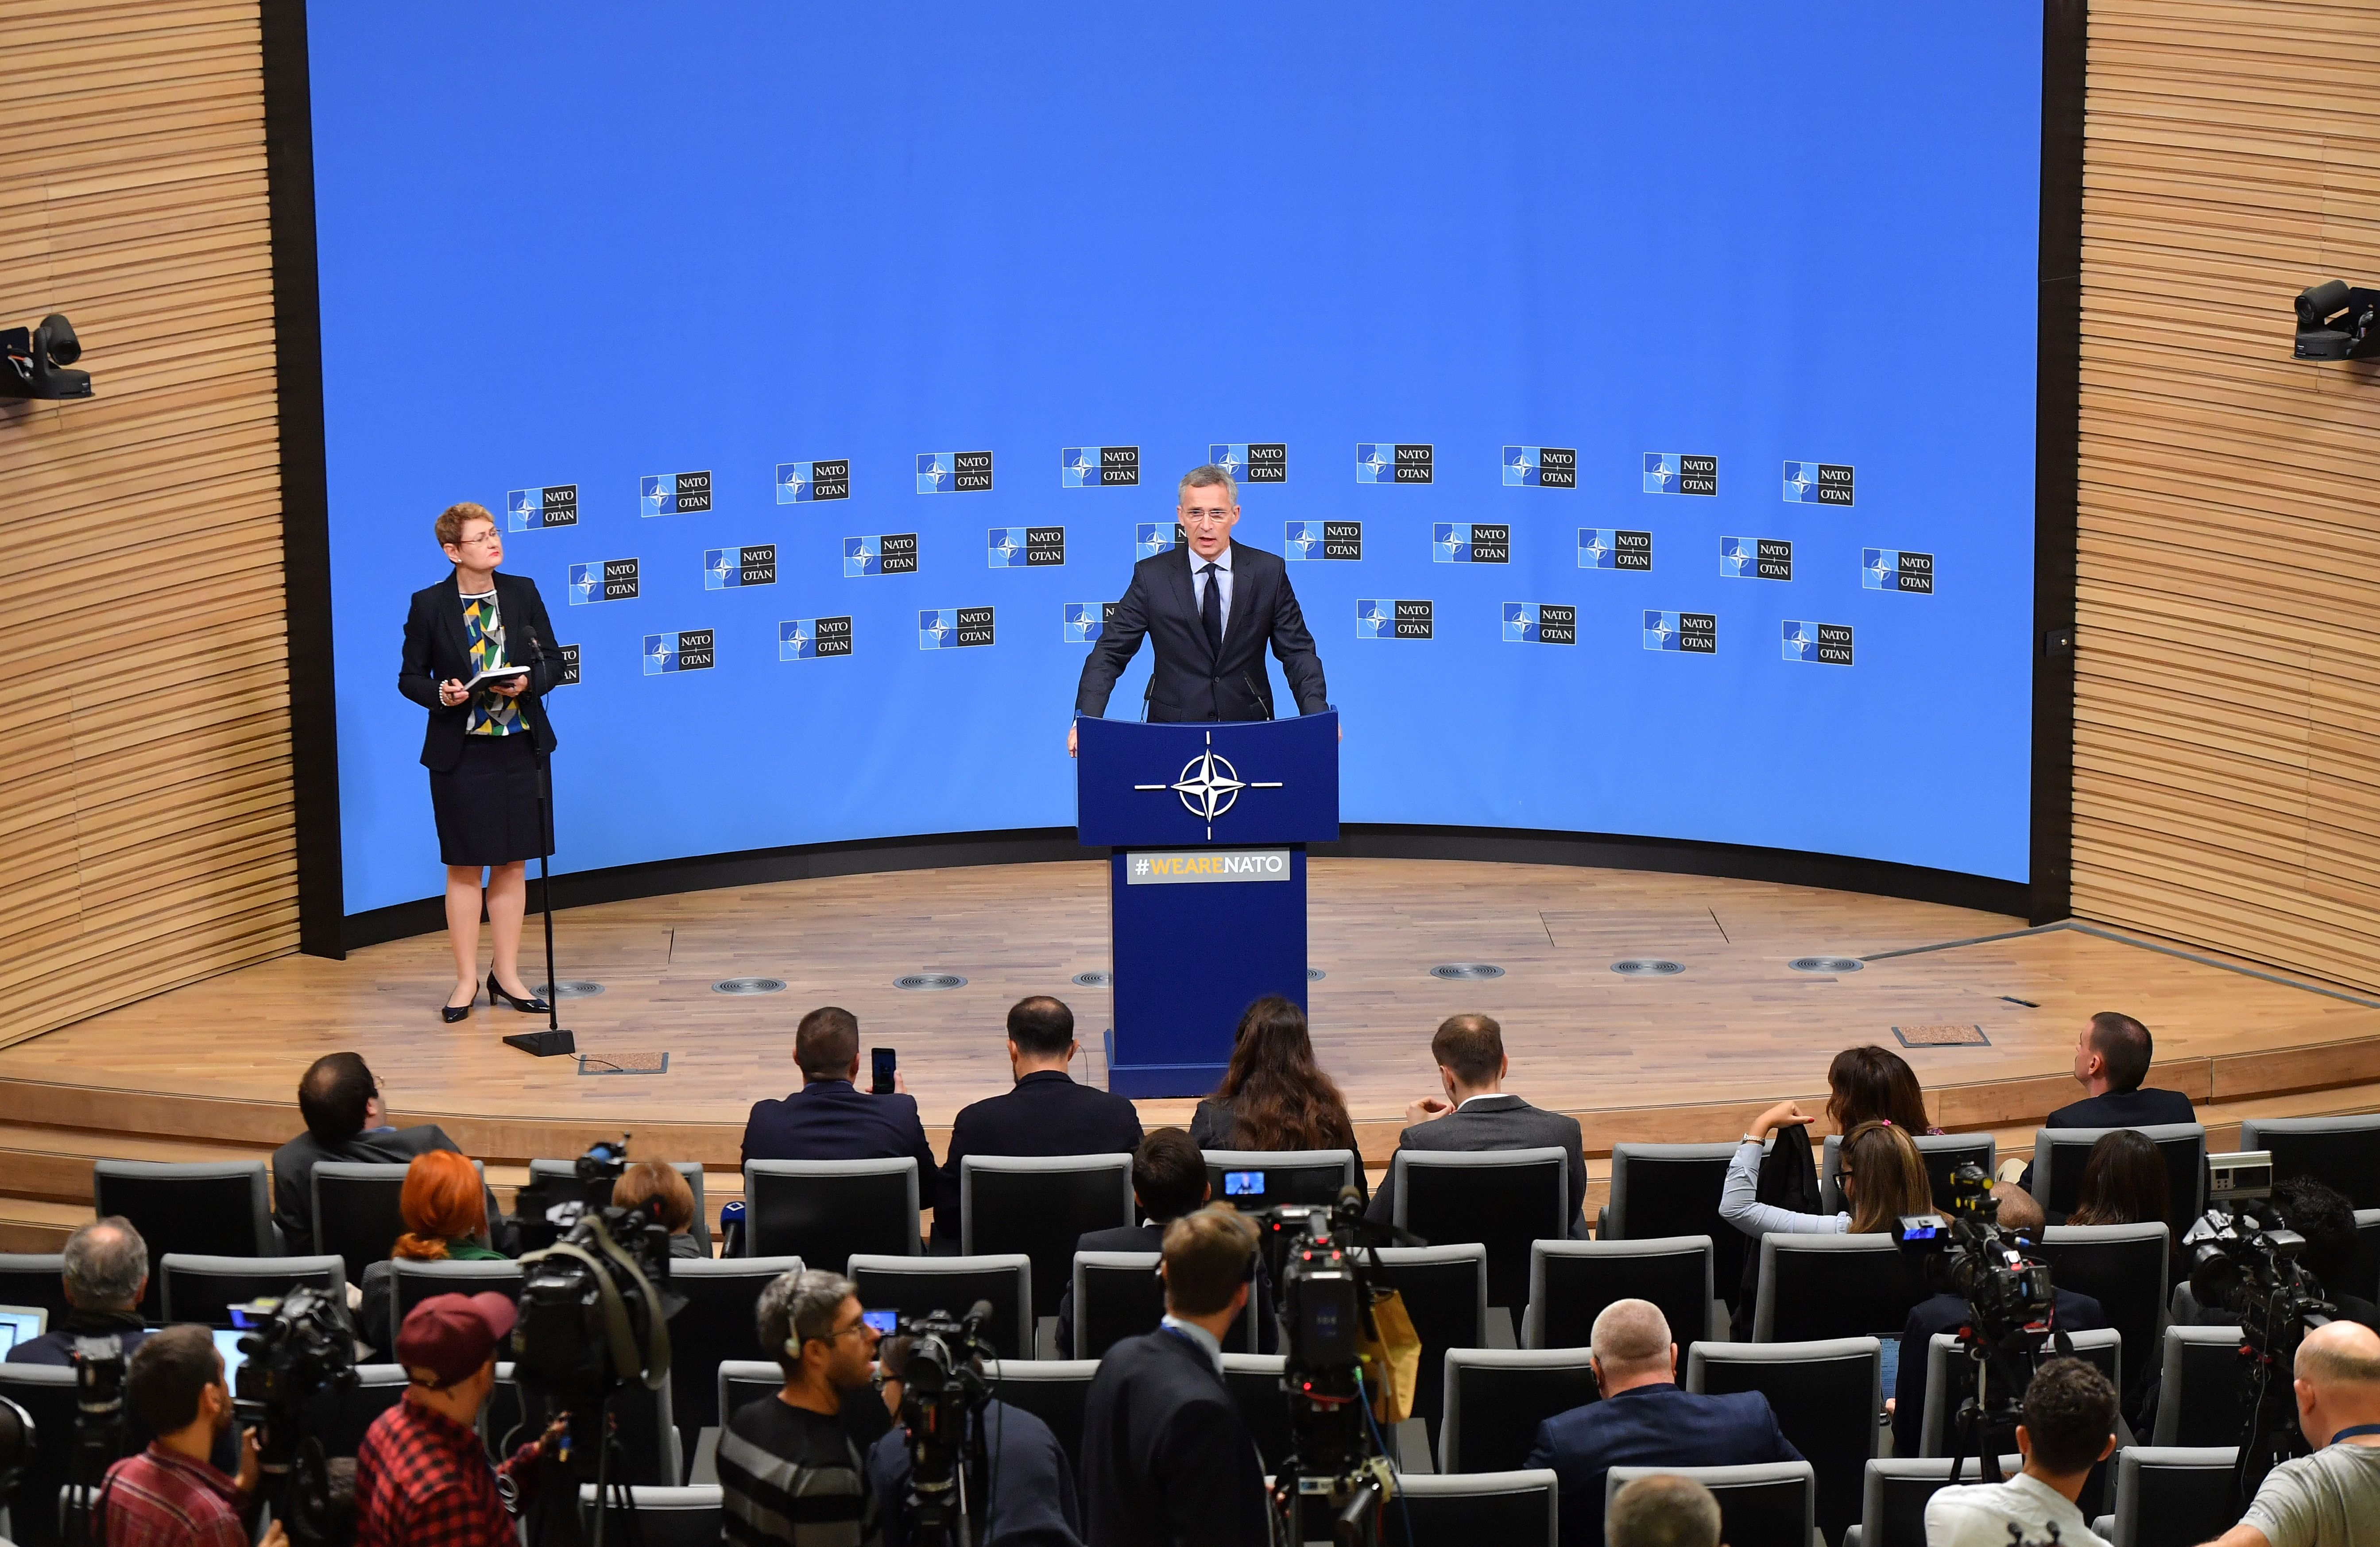 NATO Secretary General Jens Stoltenberg addresses a press conference ahead of a NATO defence ministerial meeting at NATO headquarters in Brussels on October 2, 2018.